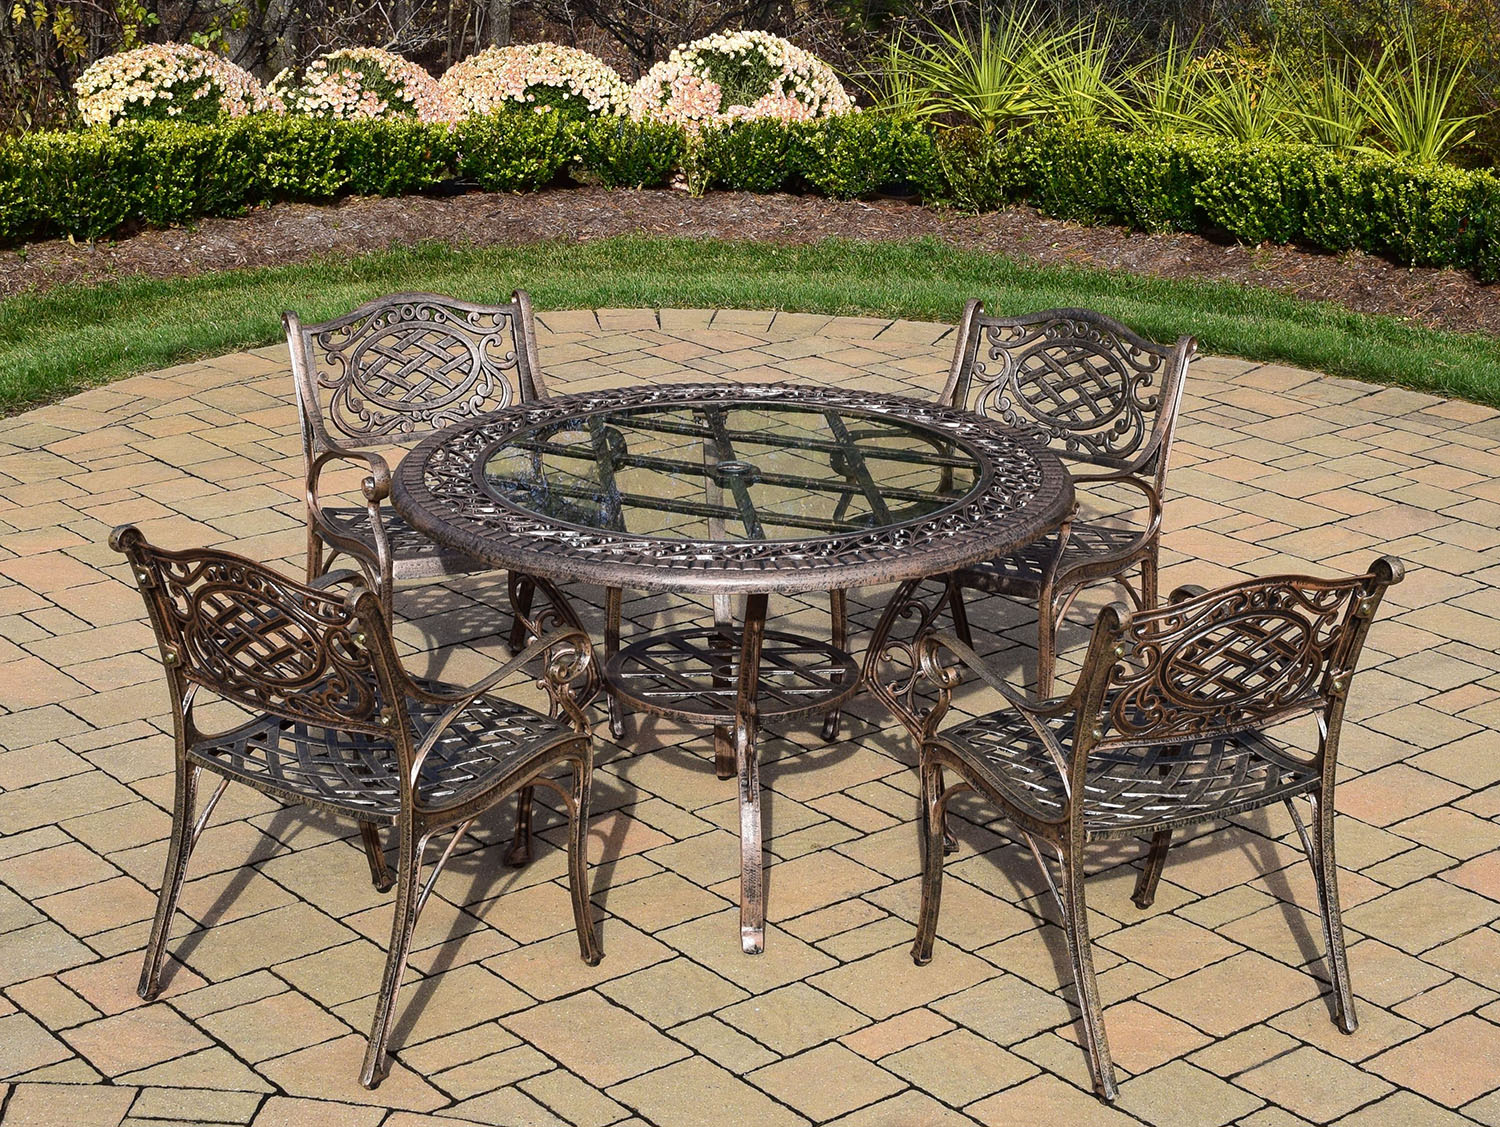 Trustworthy Mississippi Antique Bronze Glass Top Dining Set Product Photo